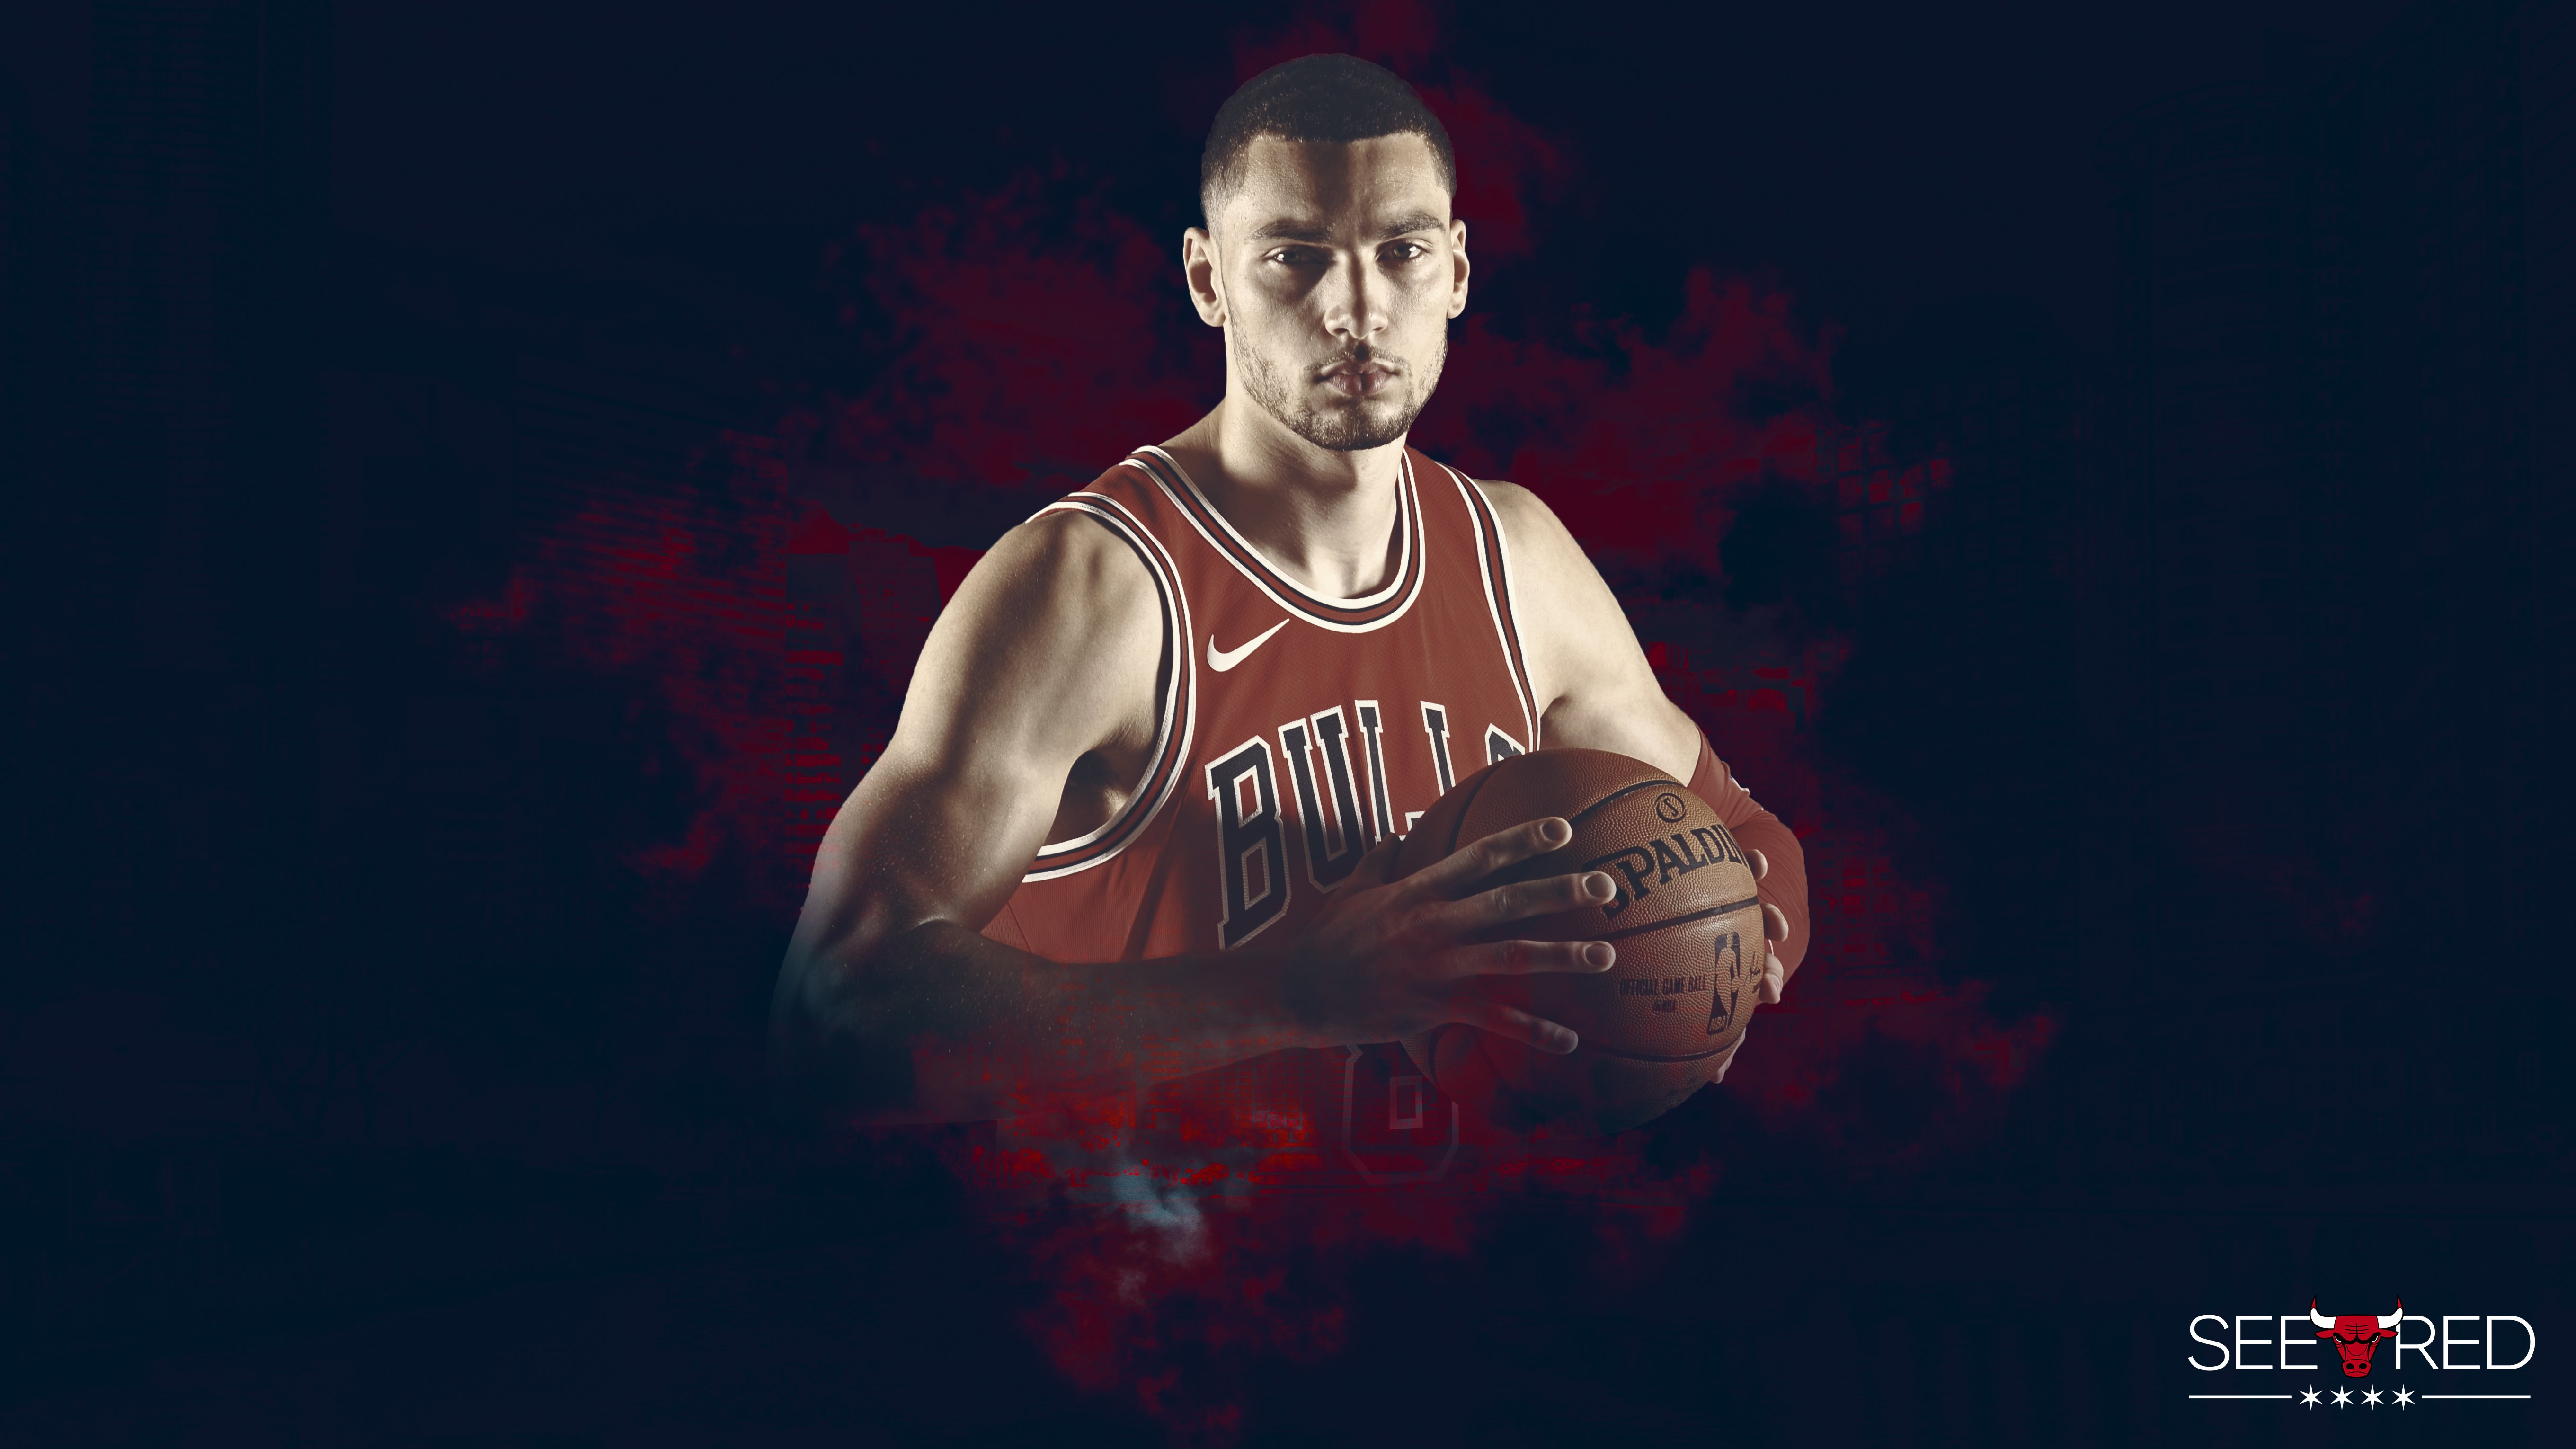 zach lavine wallpapers 64647 6556166